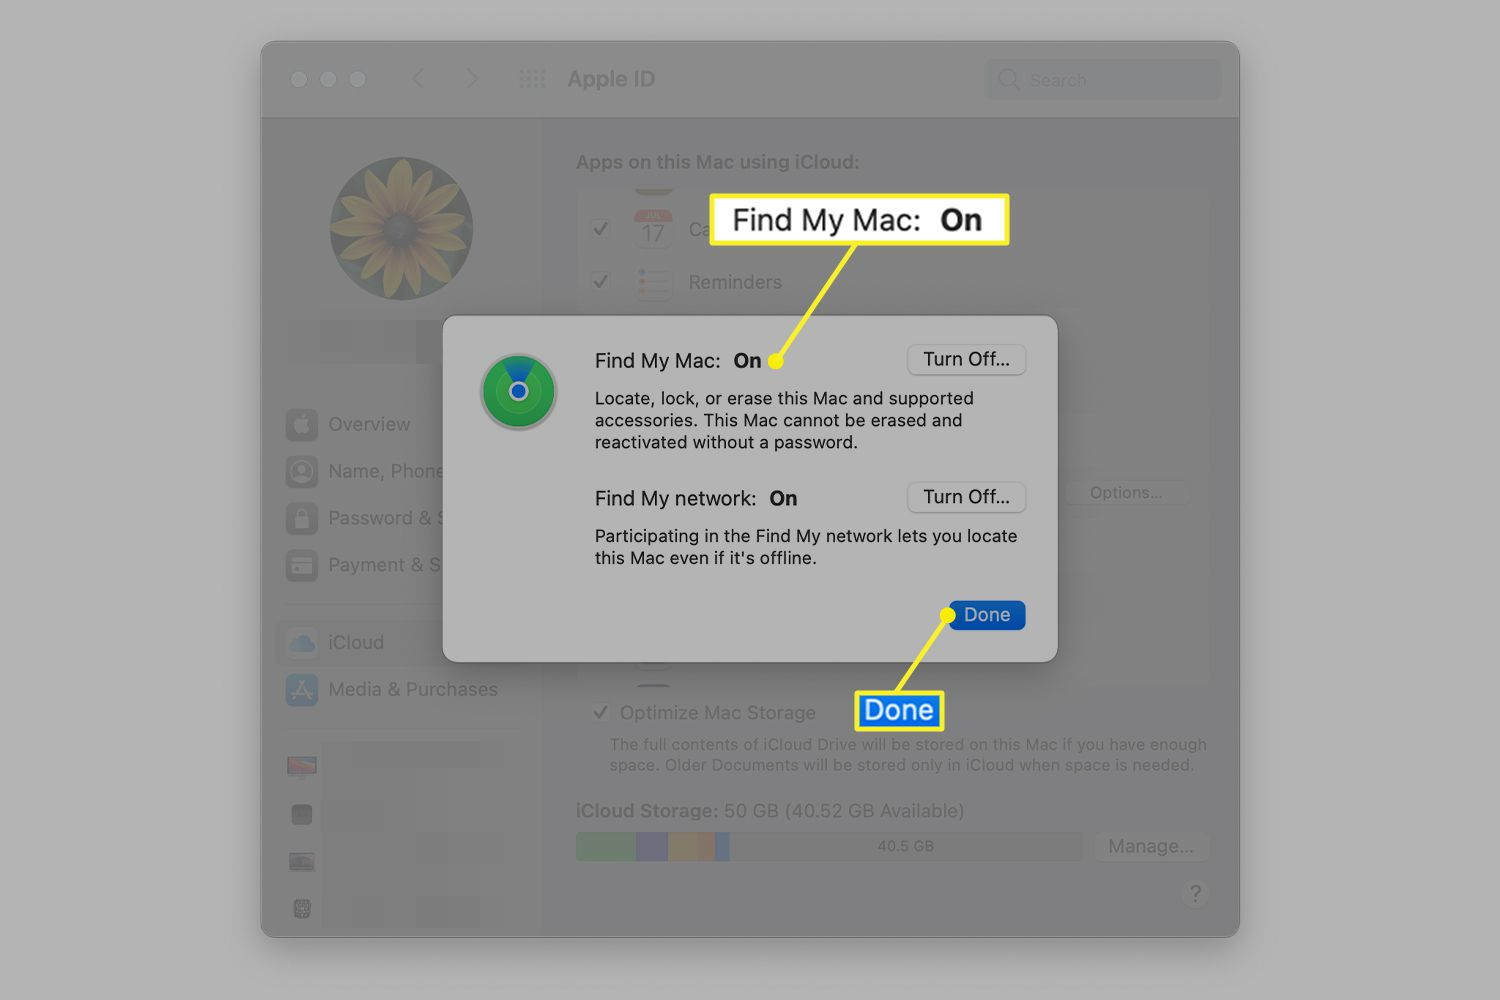 Find My Mac activation screen